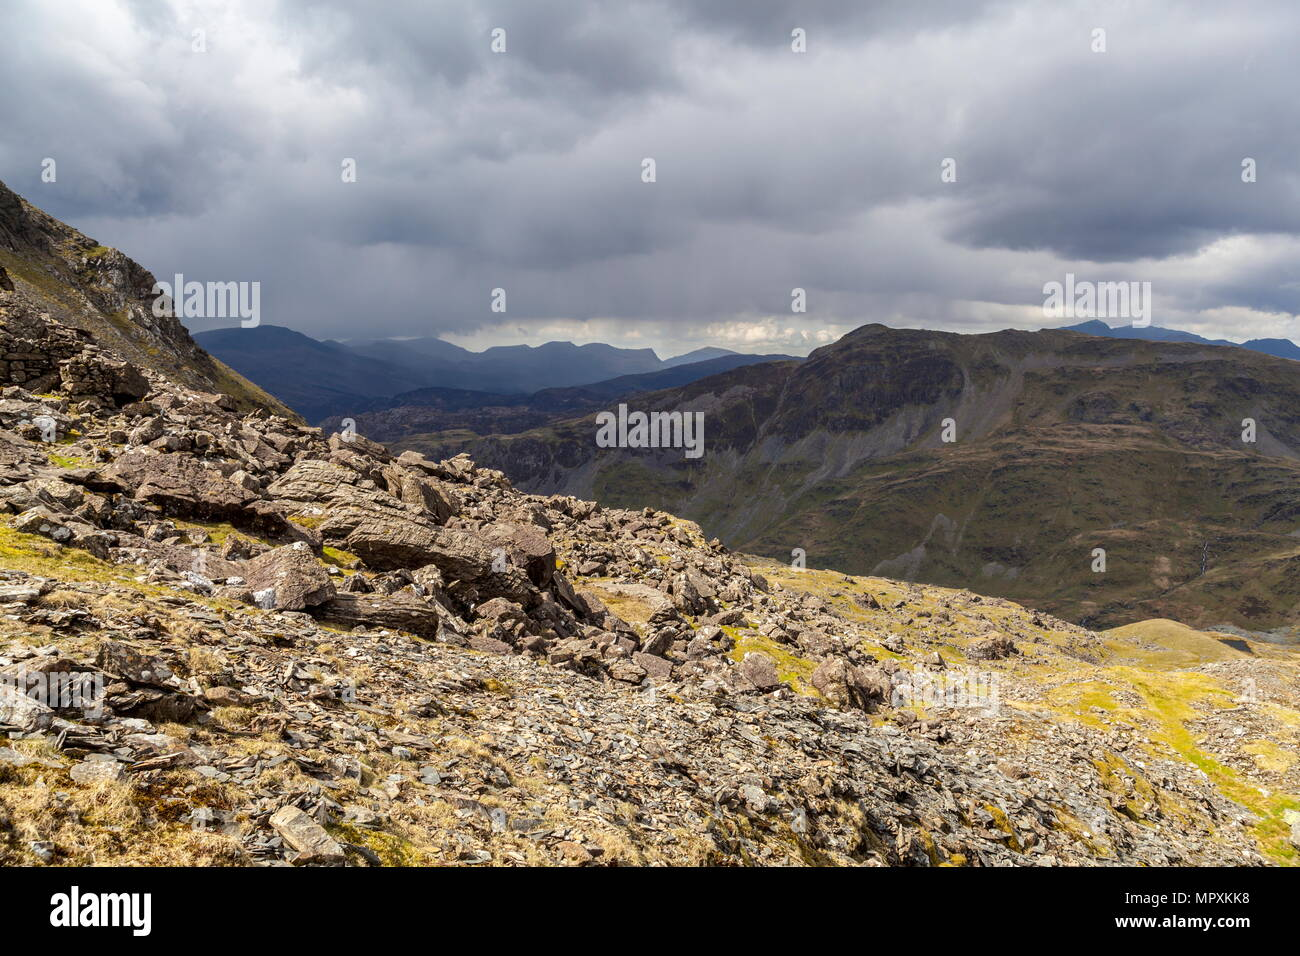 The summit of Cnicht can be seen across the Croesor valley from the side of Moelwyn Mawr while rain clouds start to move in. Stock Photo